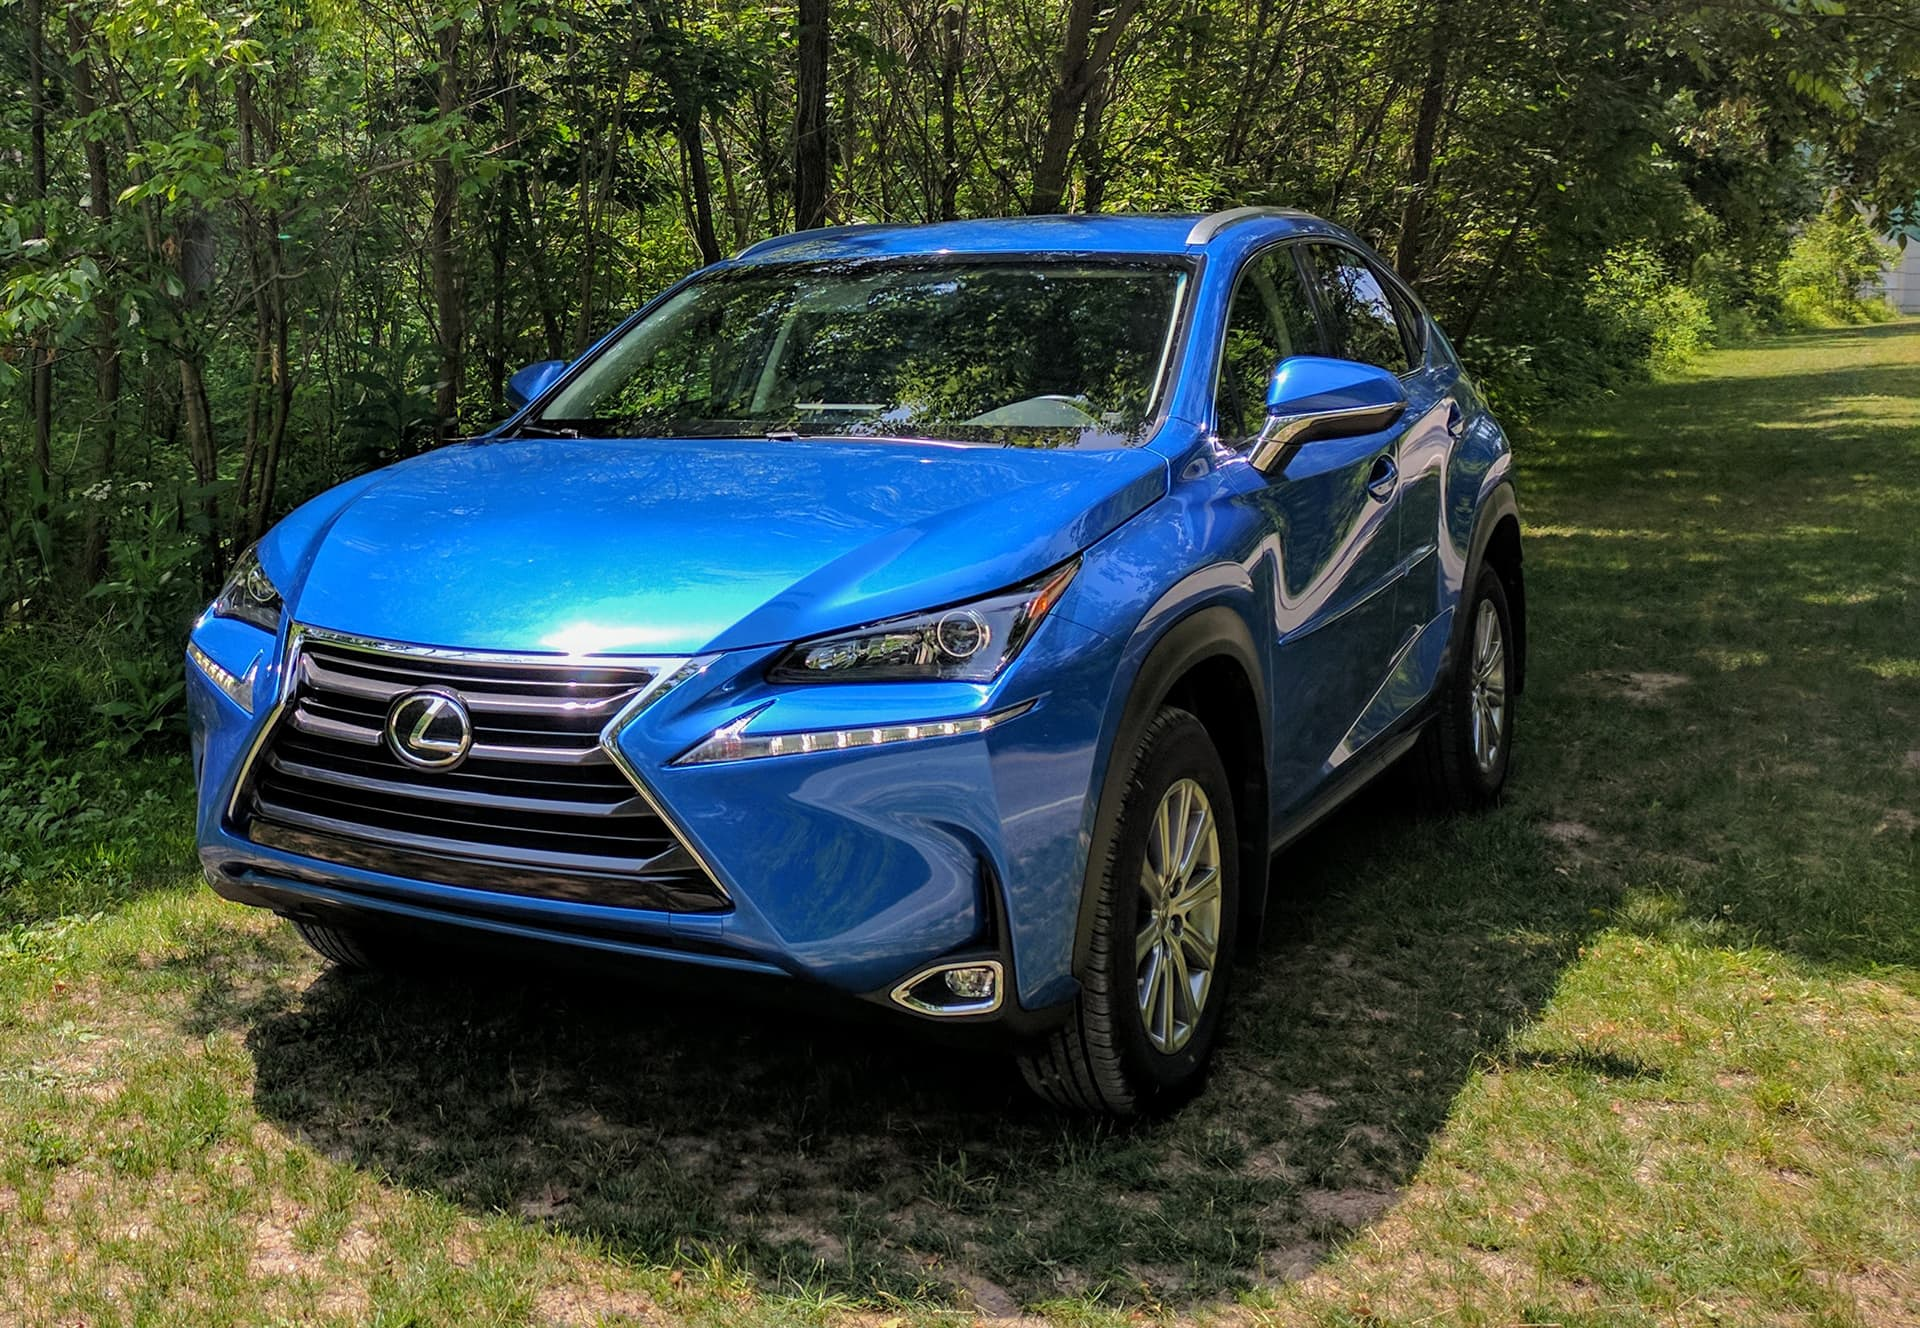 The 2017 Lexus Nx200t Is Best Value In Subcompact Luxury Suv Segment